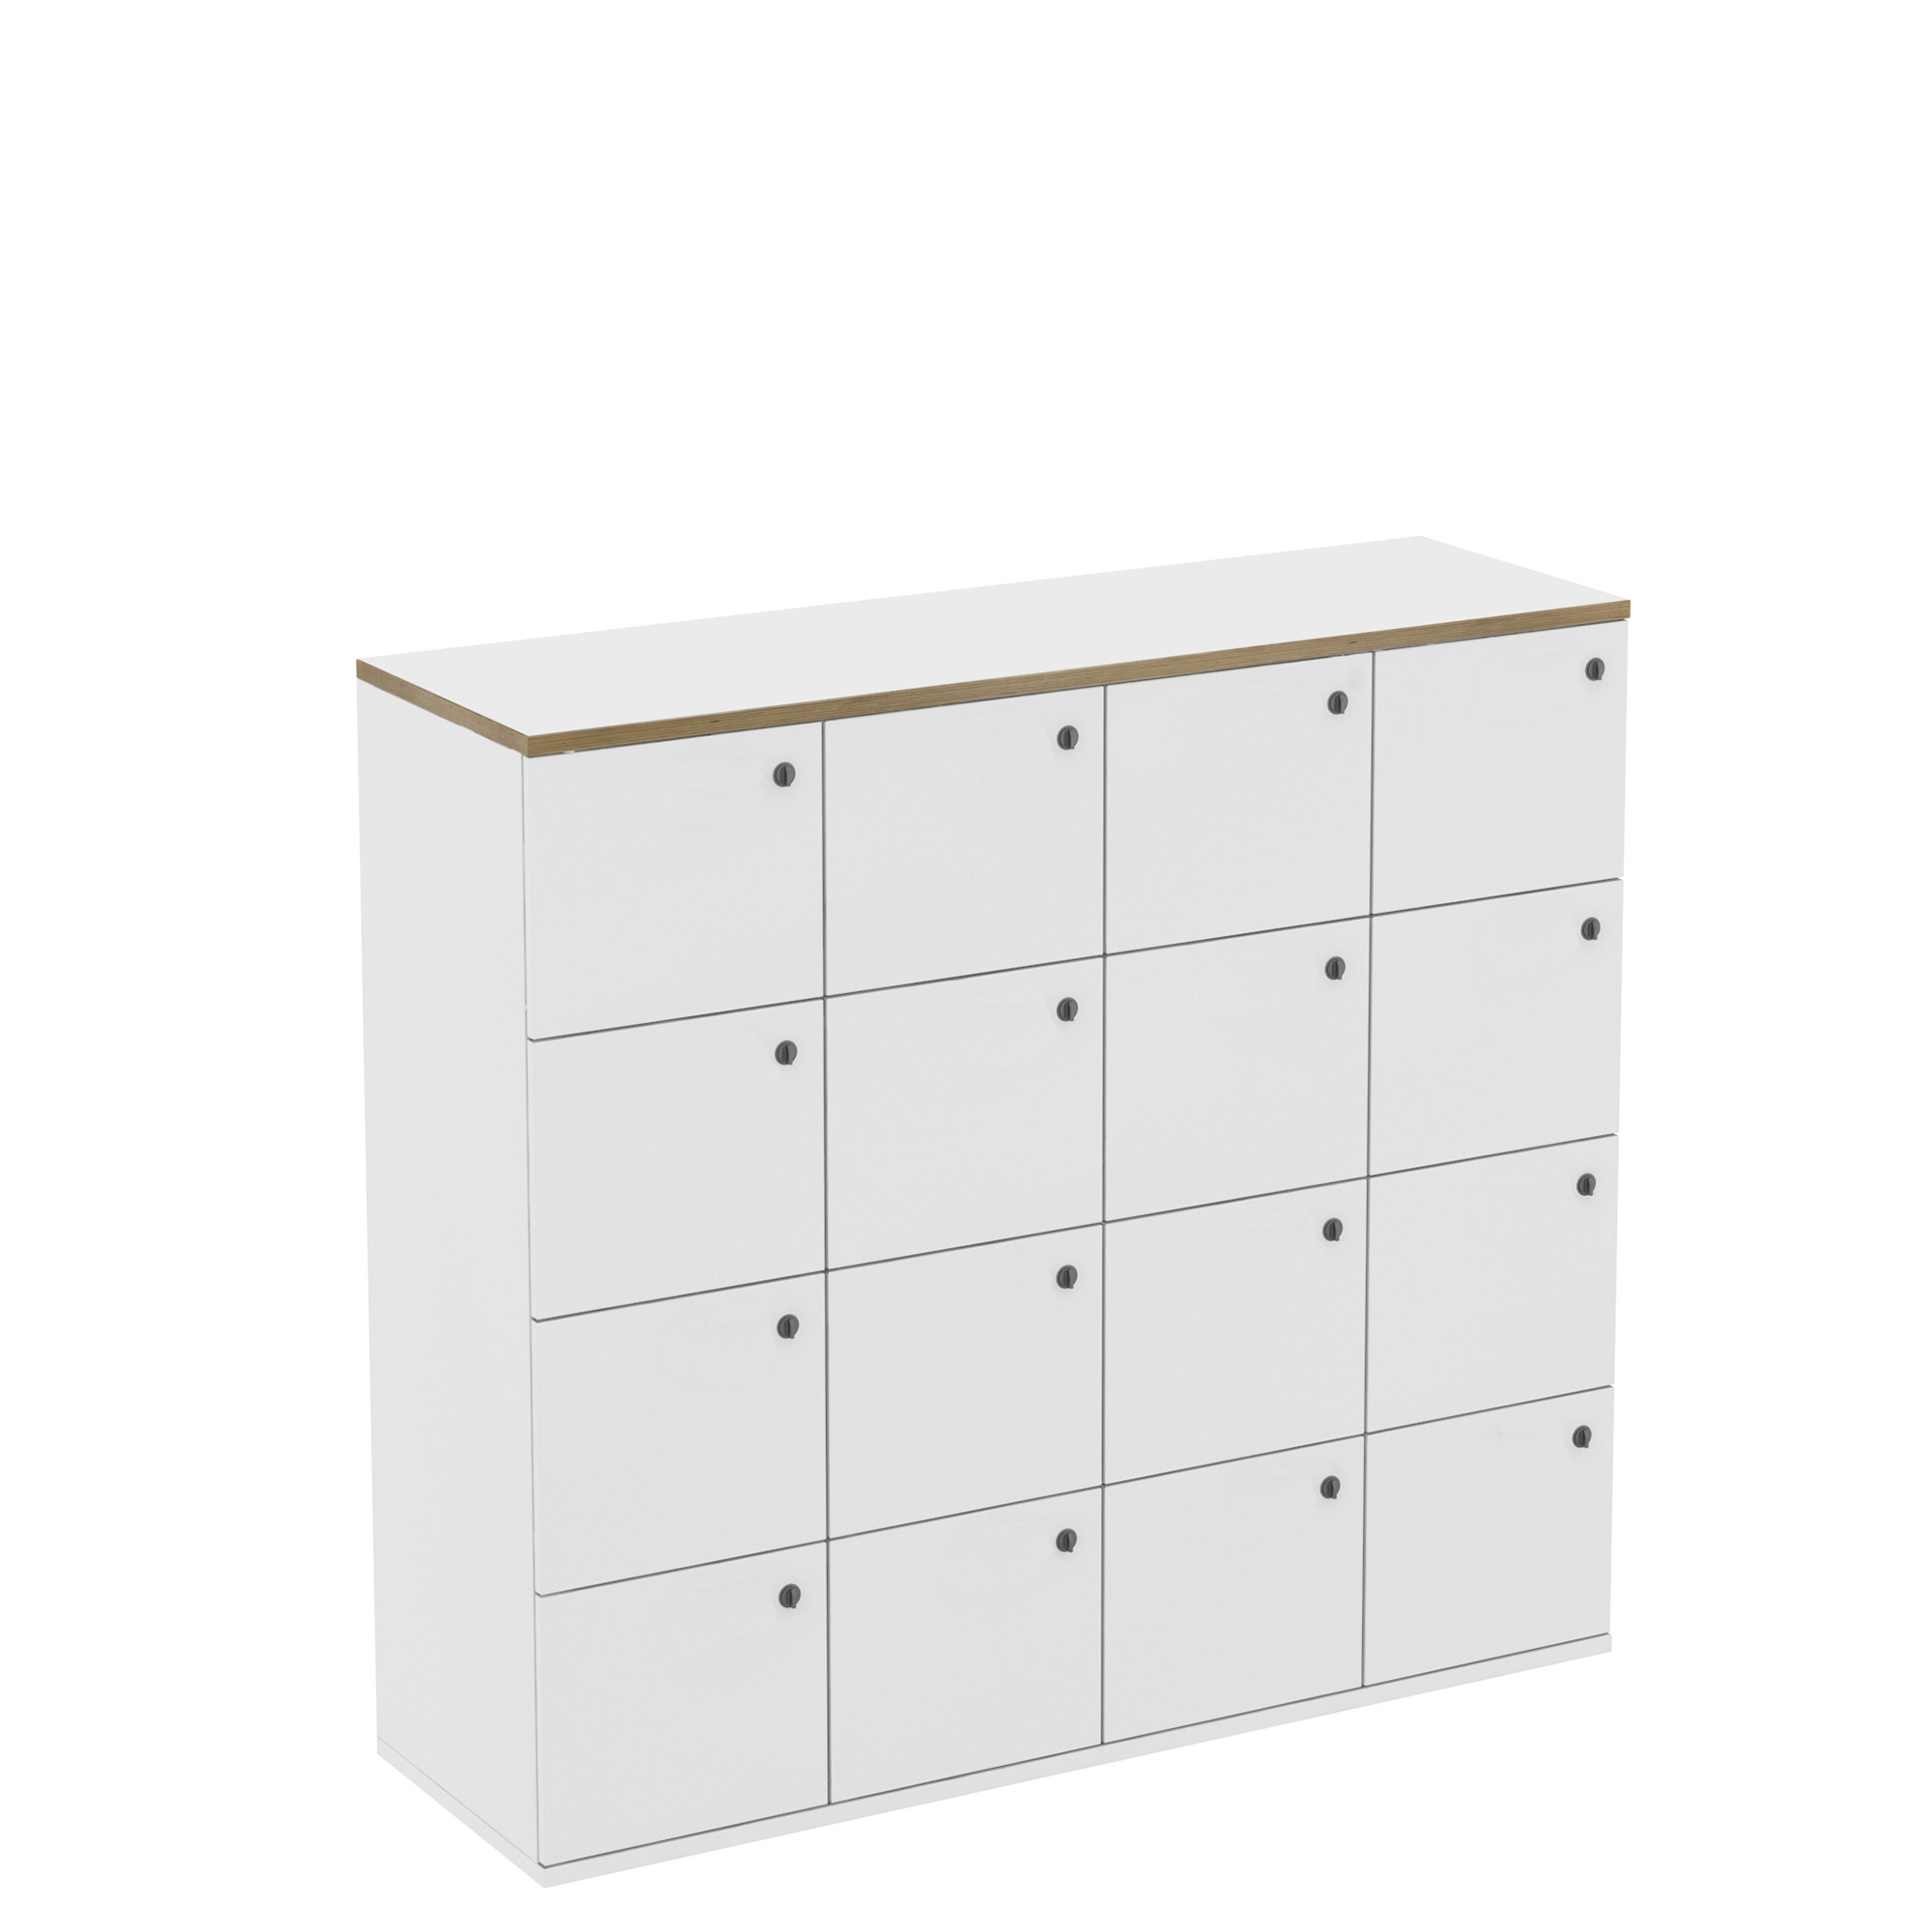 16 Door White Office Locker with Plywood Edge